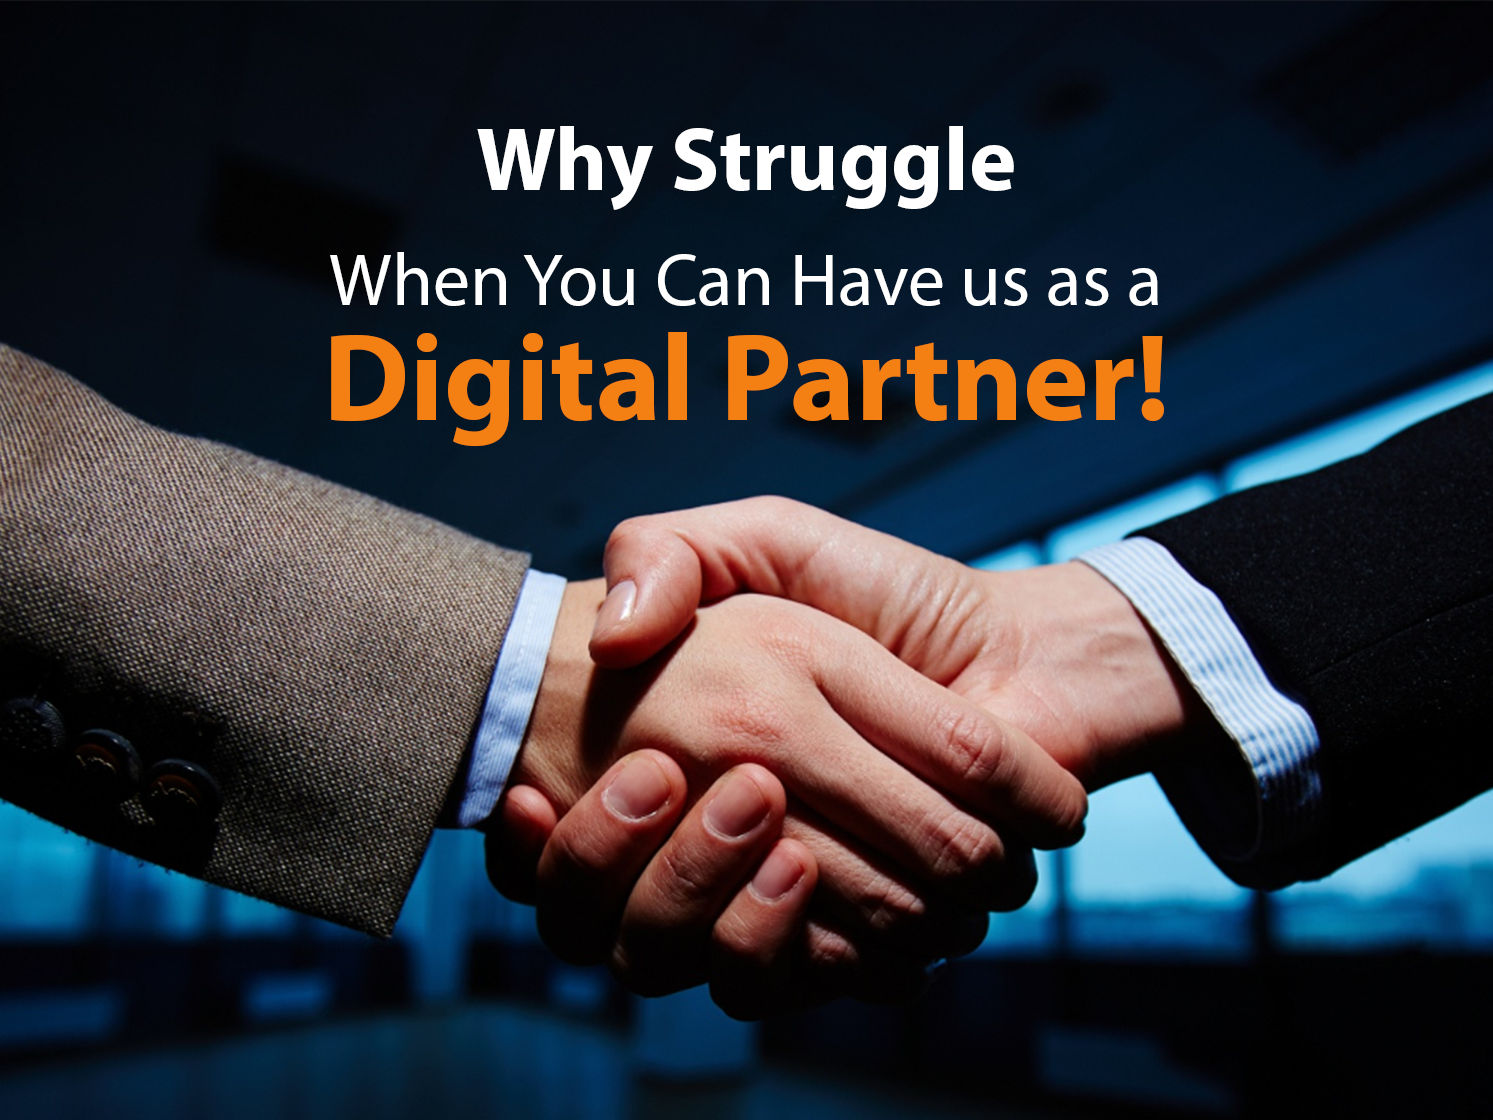 Why Struggle When You Can Have Us as a Digital Partner!